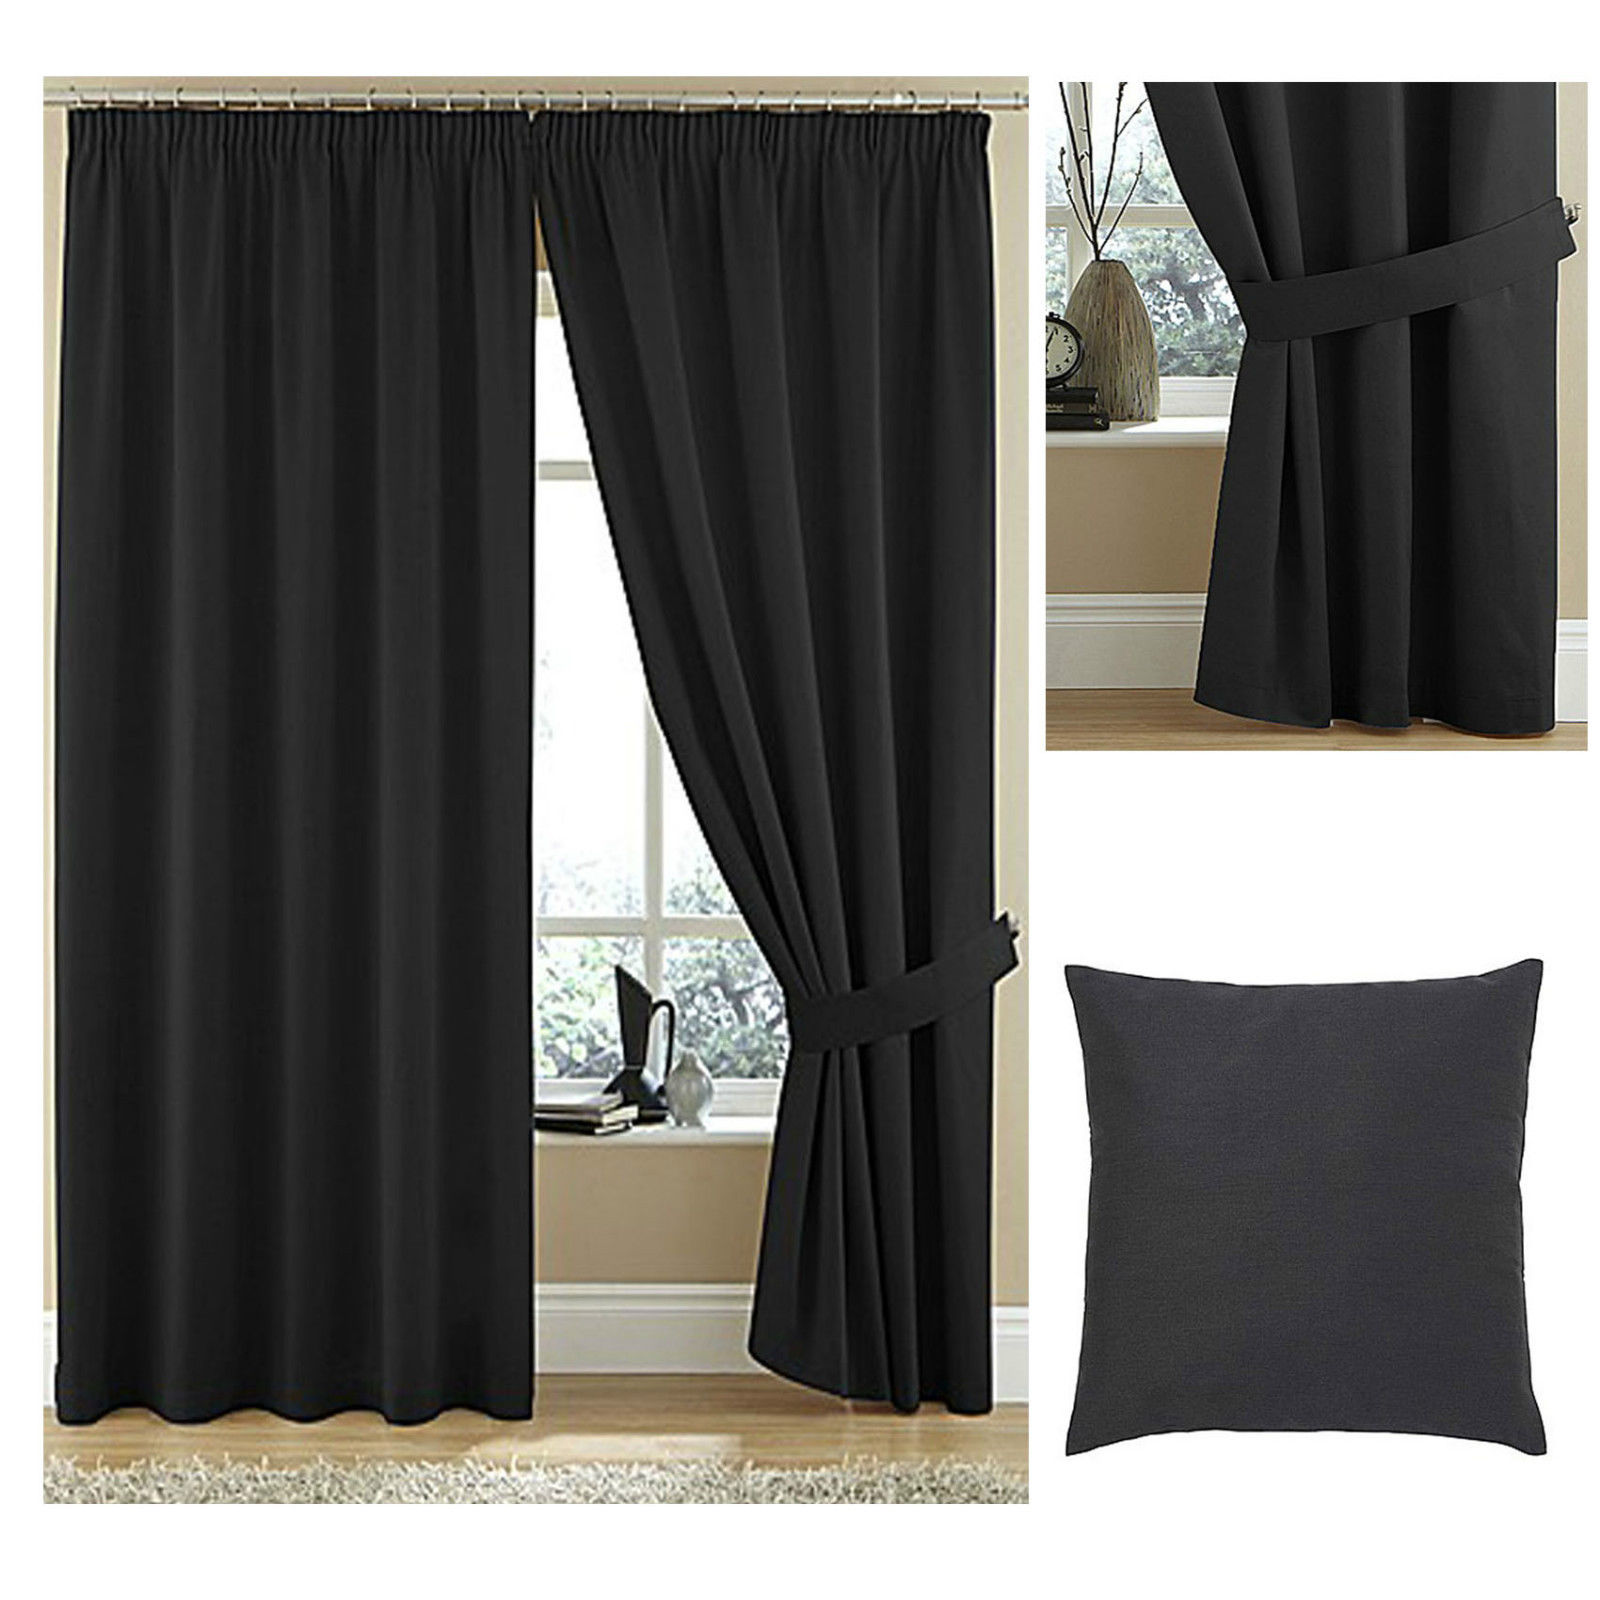 Twill High Quality Lined Pencil Pleat Curtains 100 Cotton Plain Dyed Textured Ebay